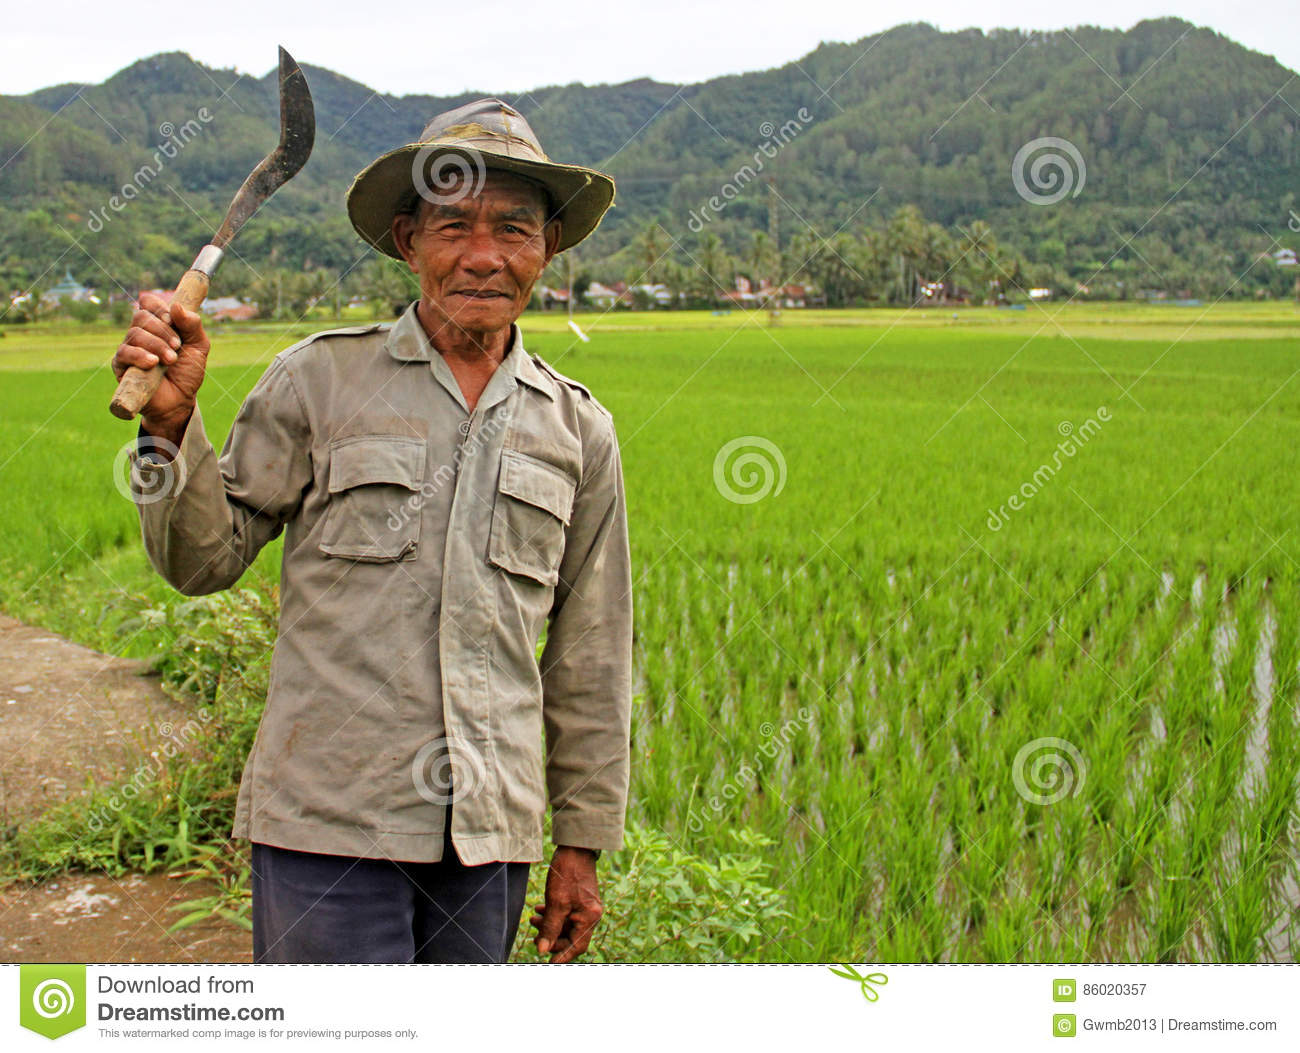 Rice Field Worker in the Harau Valley in West Sumatra, Indonesia